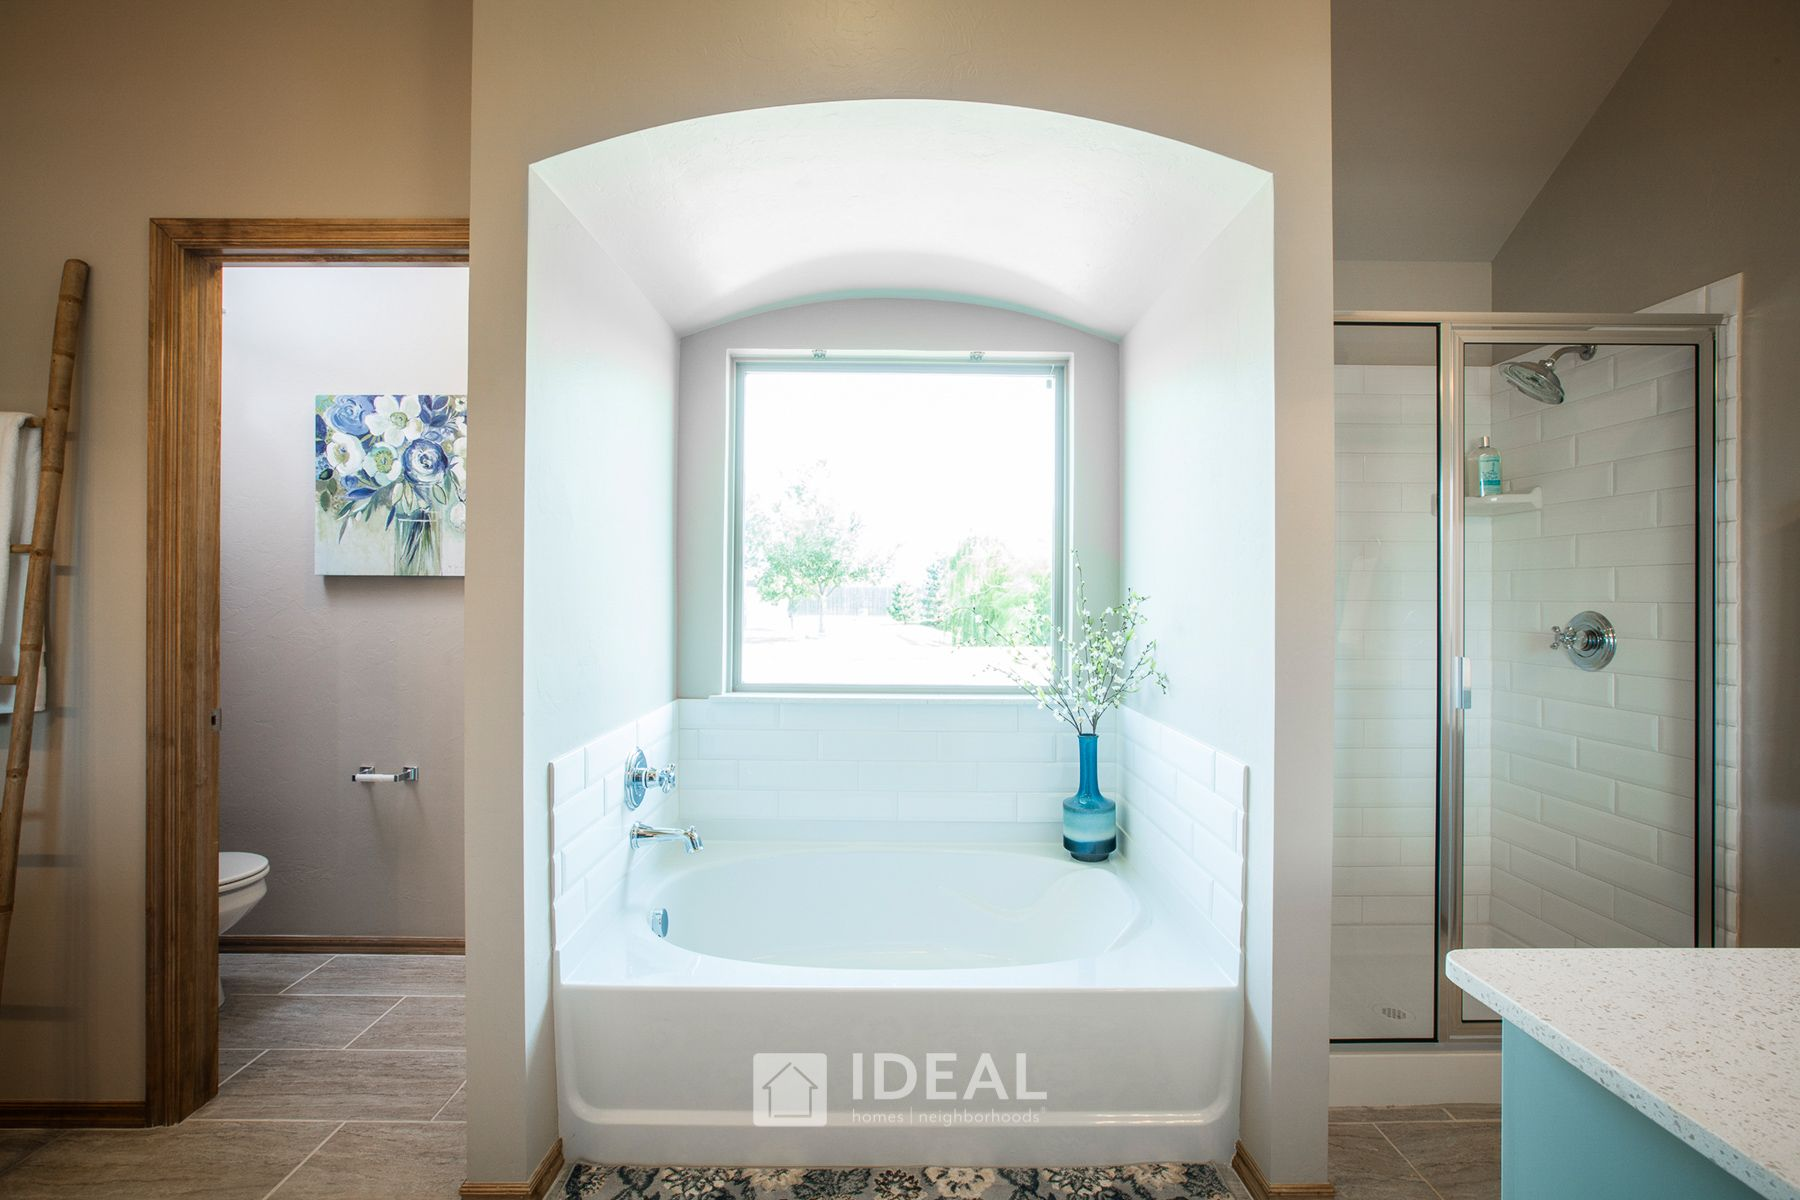 Bathroom featured in the Kendall By Ideal Homes in Oklahoma City, OK